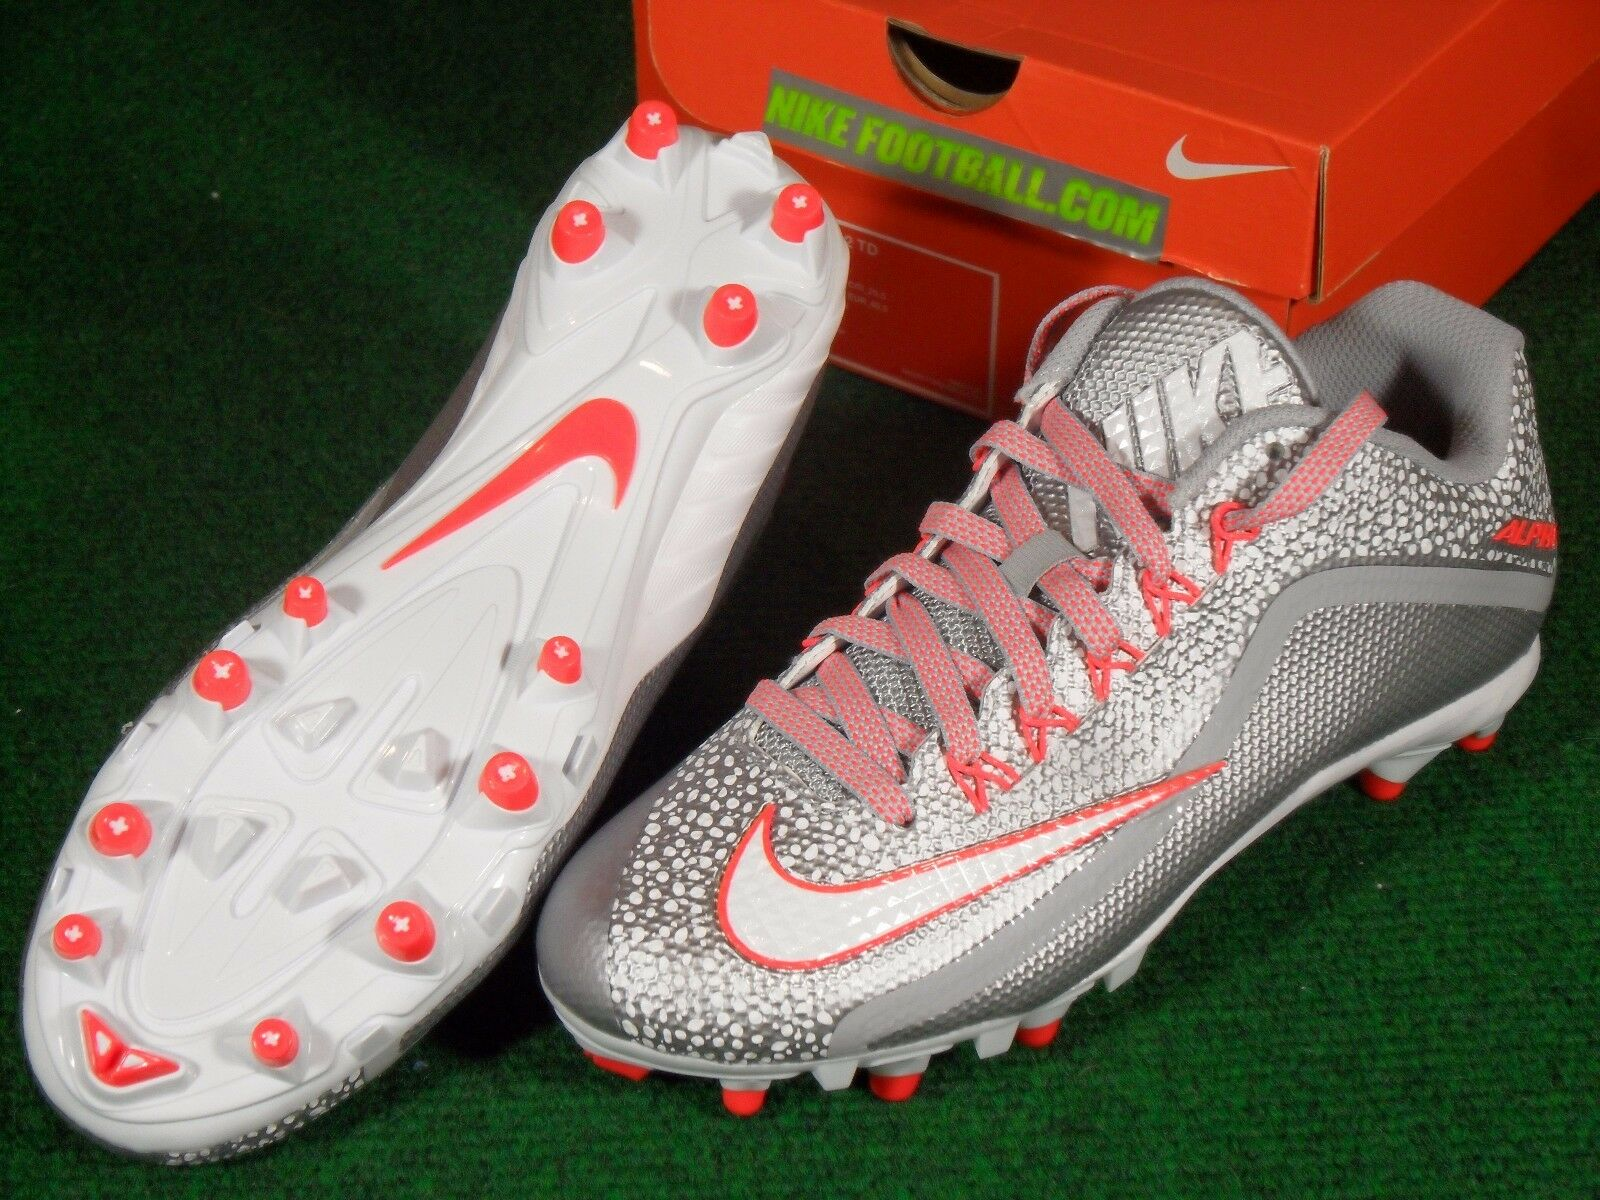 New NIB Nike Alpha Pro 2 TD Football Cleats Wolf Grey Bright Crimson 7.5 719925